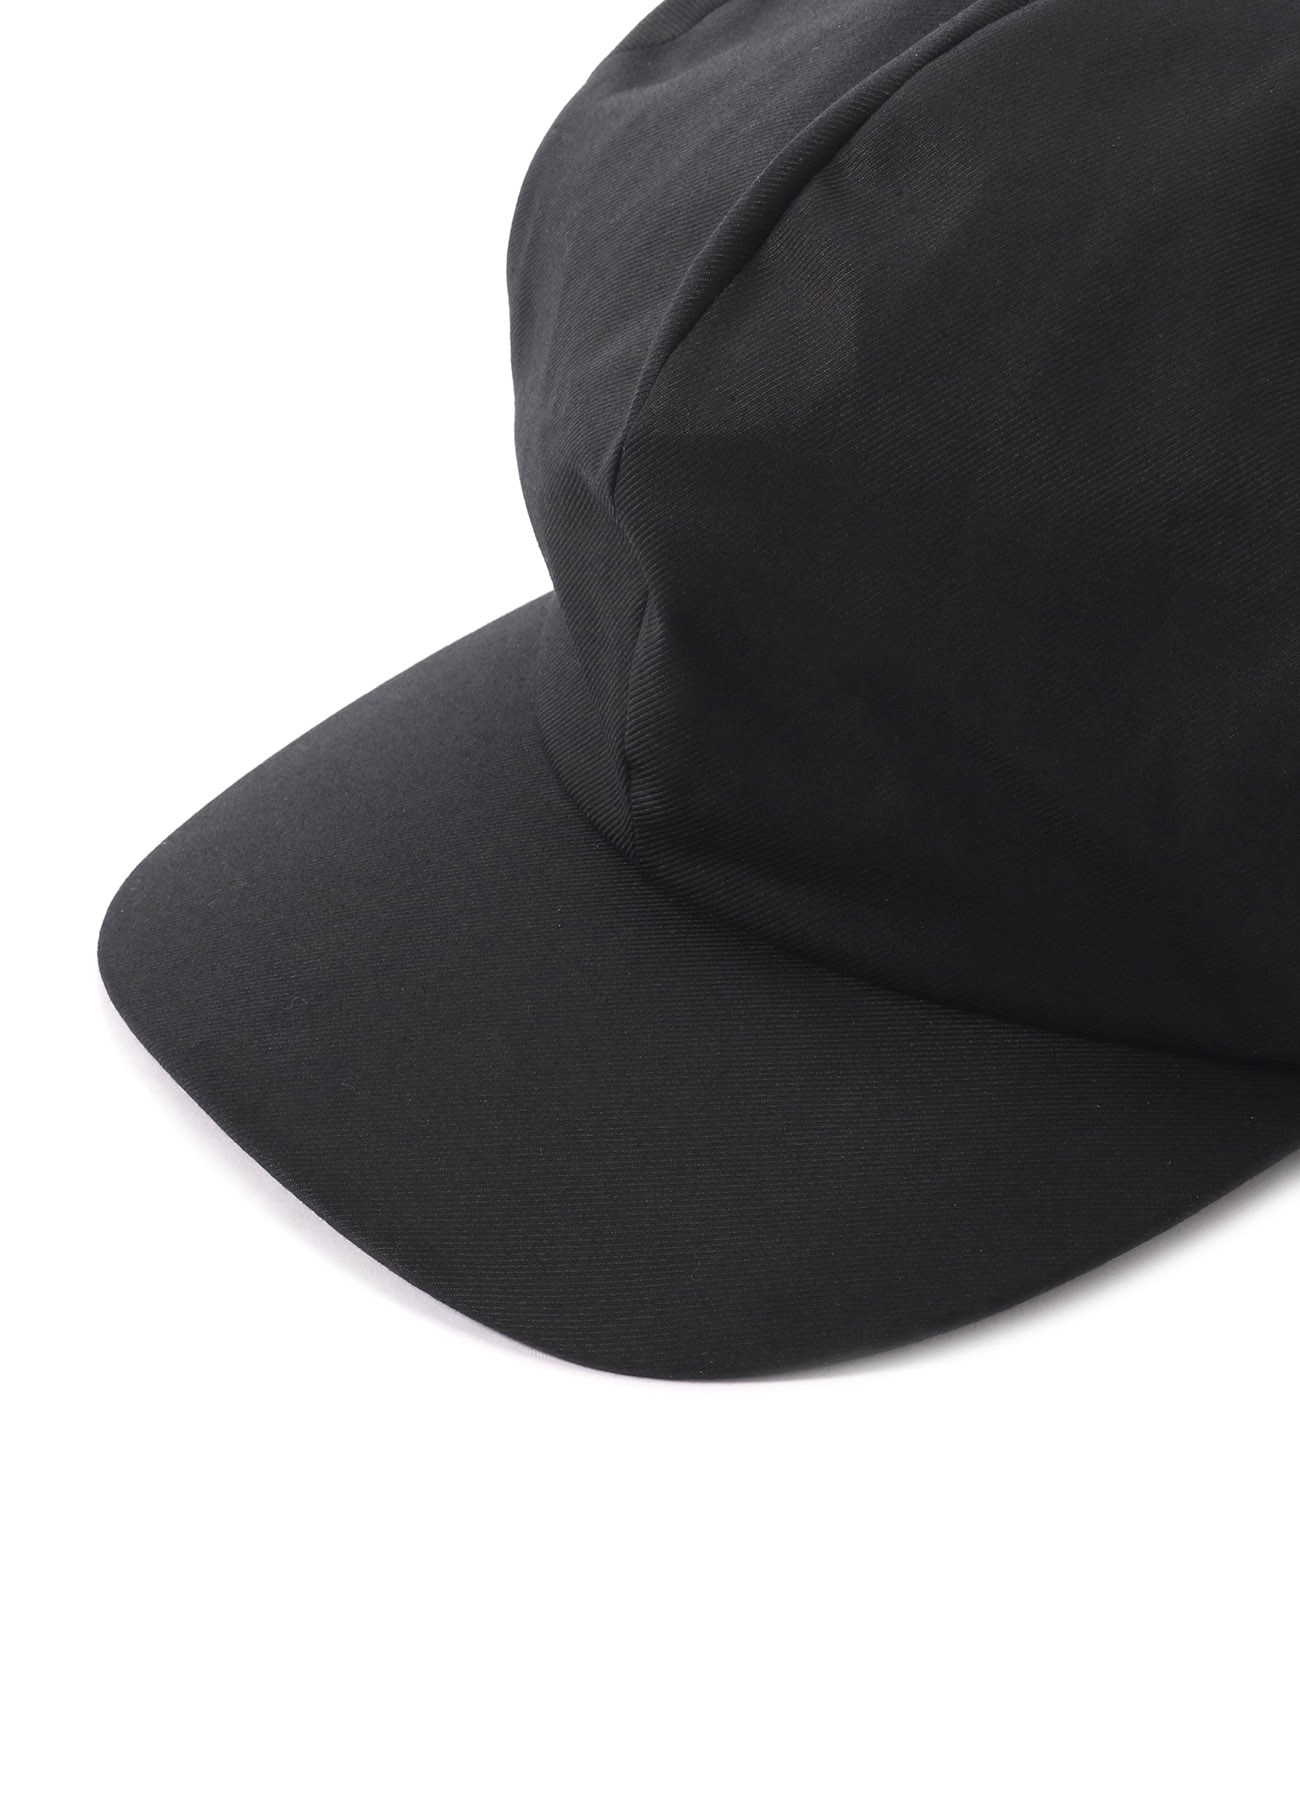 SUPIMA COTTON 60/3 LAYERED NEWSBOY CAP